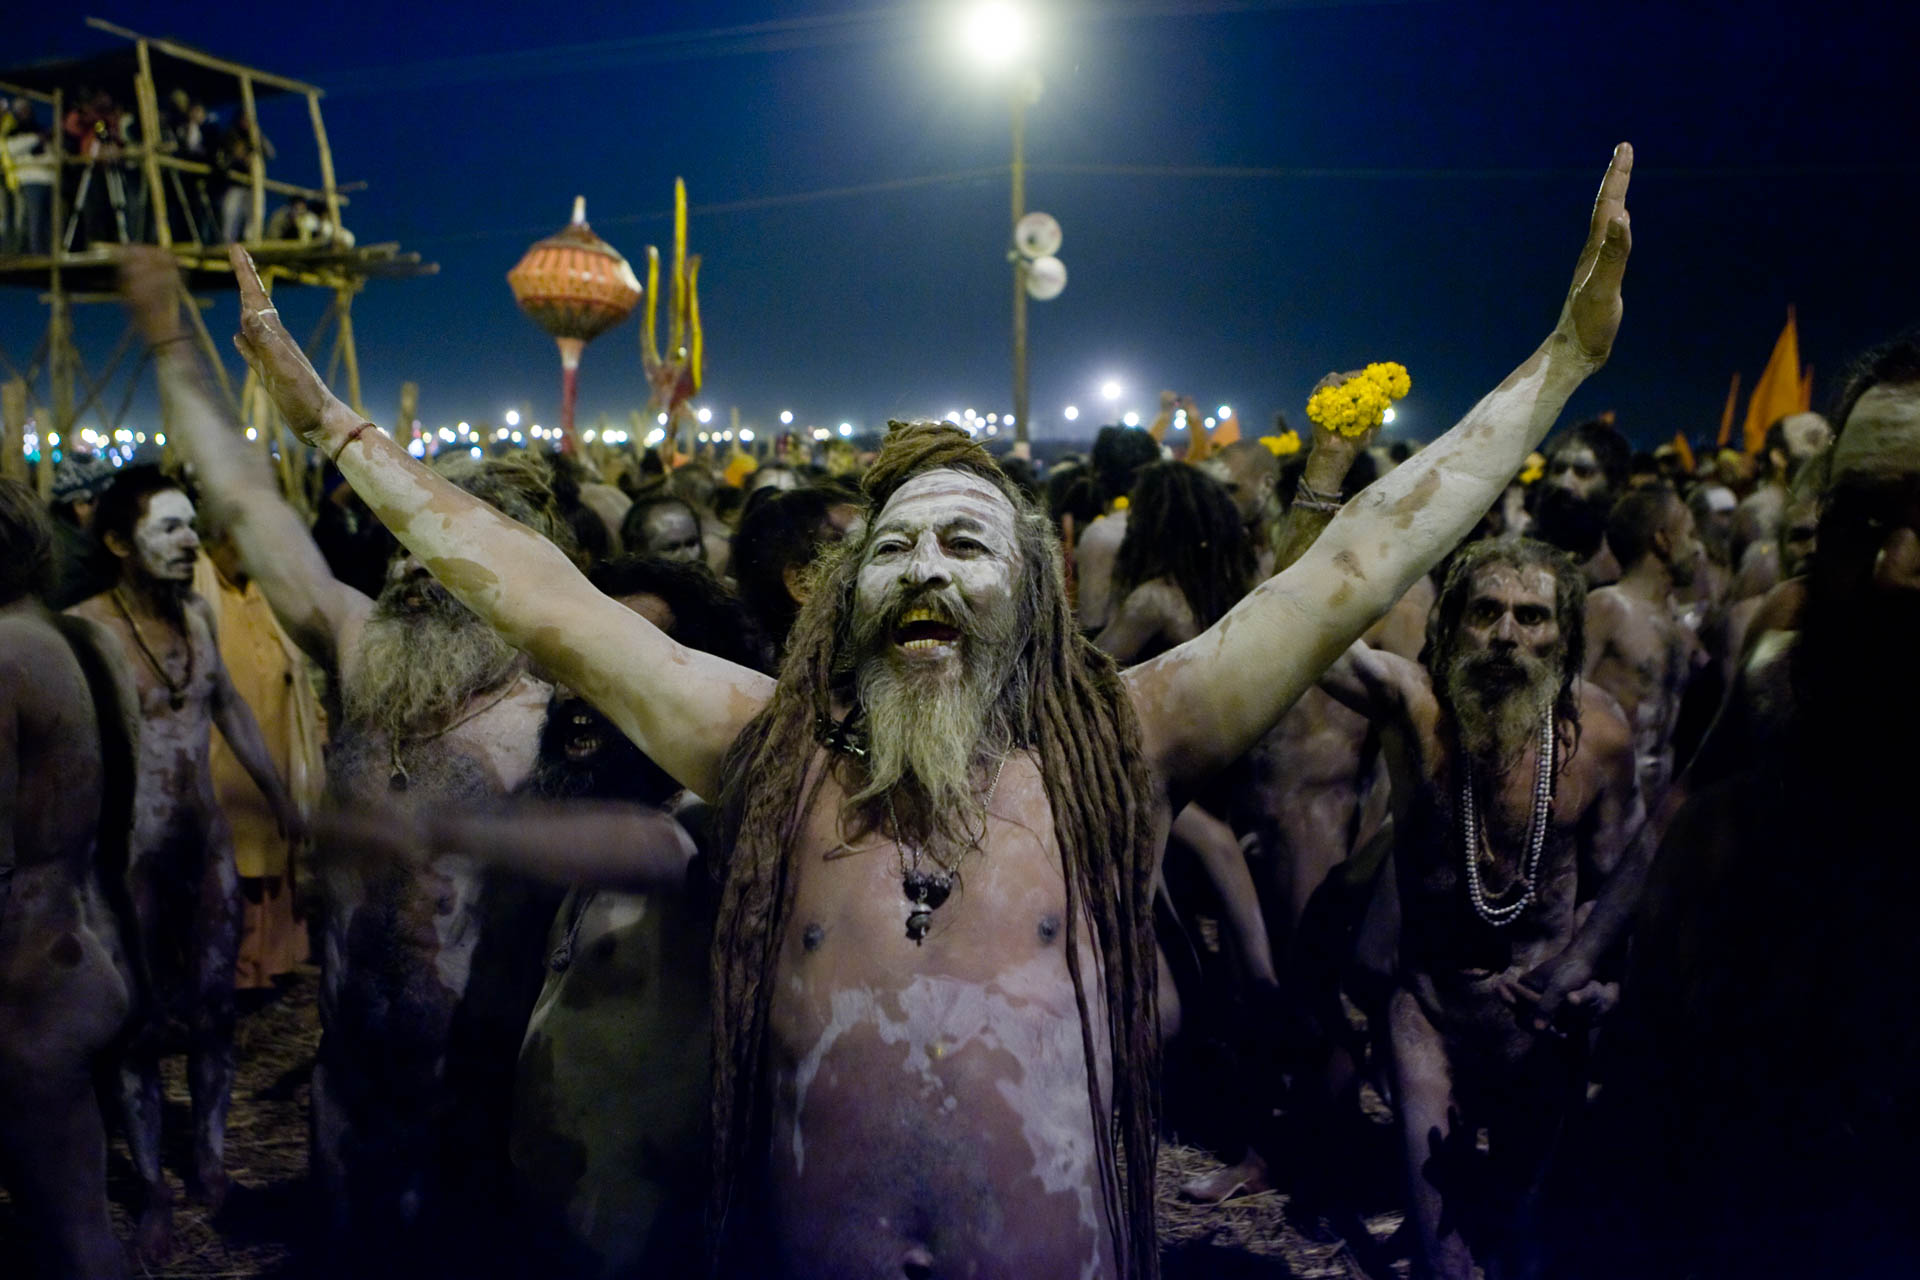 Allahbad, India - 19 January 2007At the confluence of the rivers Ganges, Yamuna and the invisible Sarasvati, Hindu pilgrims and Sadhu take bath in the sacred waters  on the occasion of Ard Kumbh Mela, every 6 years: the main bath day.© GIANNI GIANSANTI